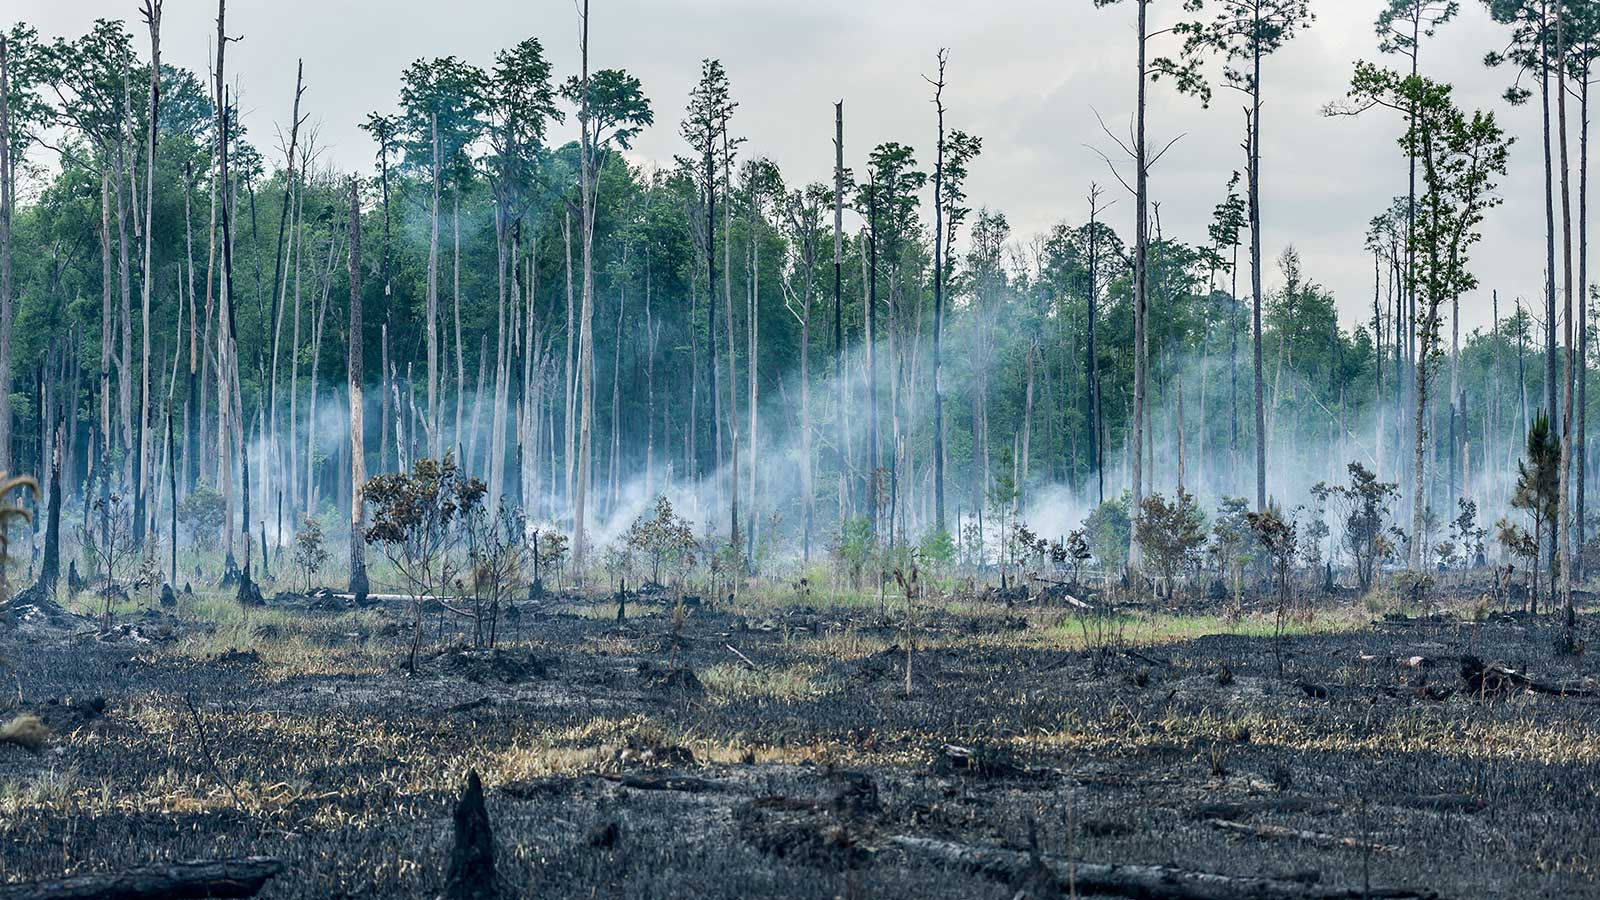 Smoke from a dying fire rolls over the swamp